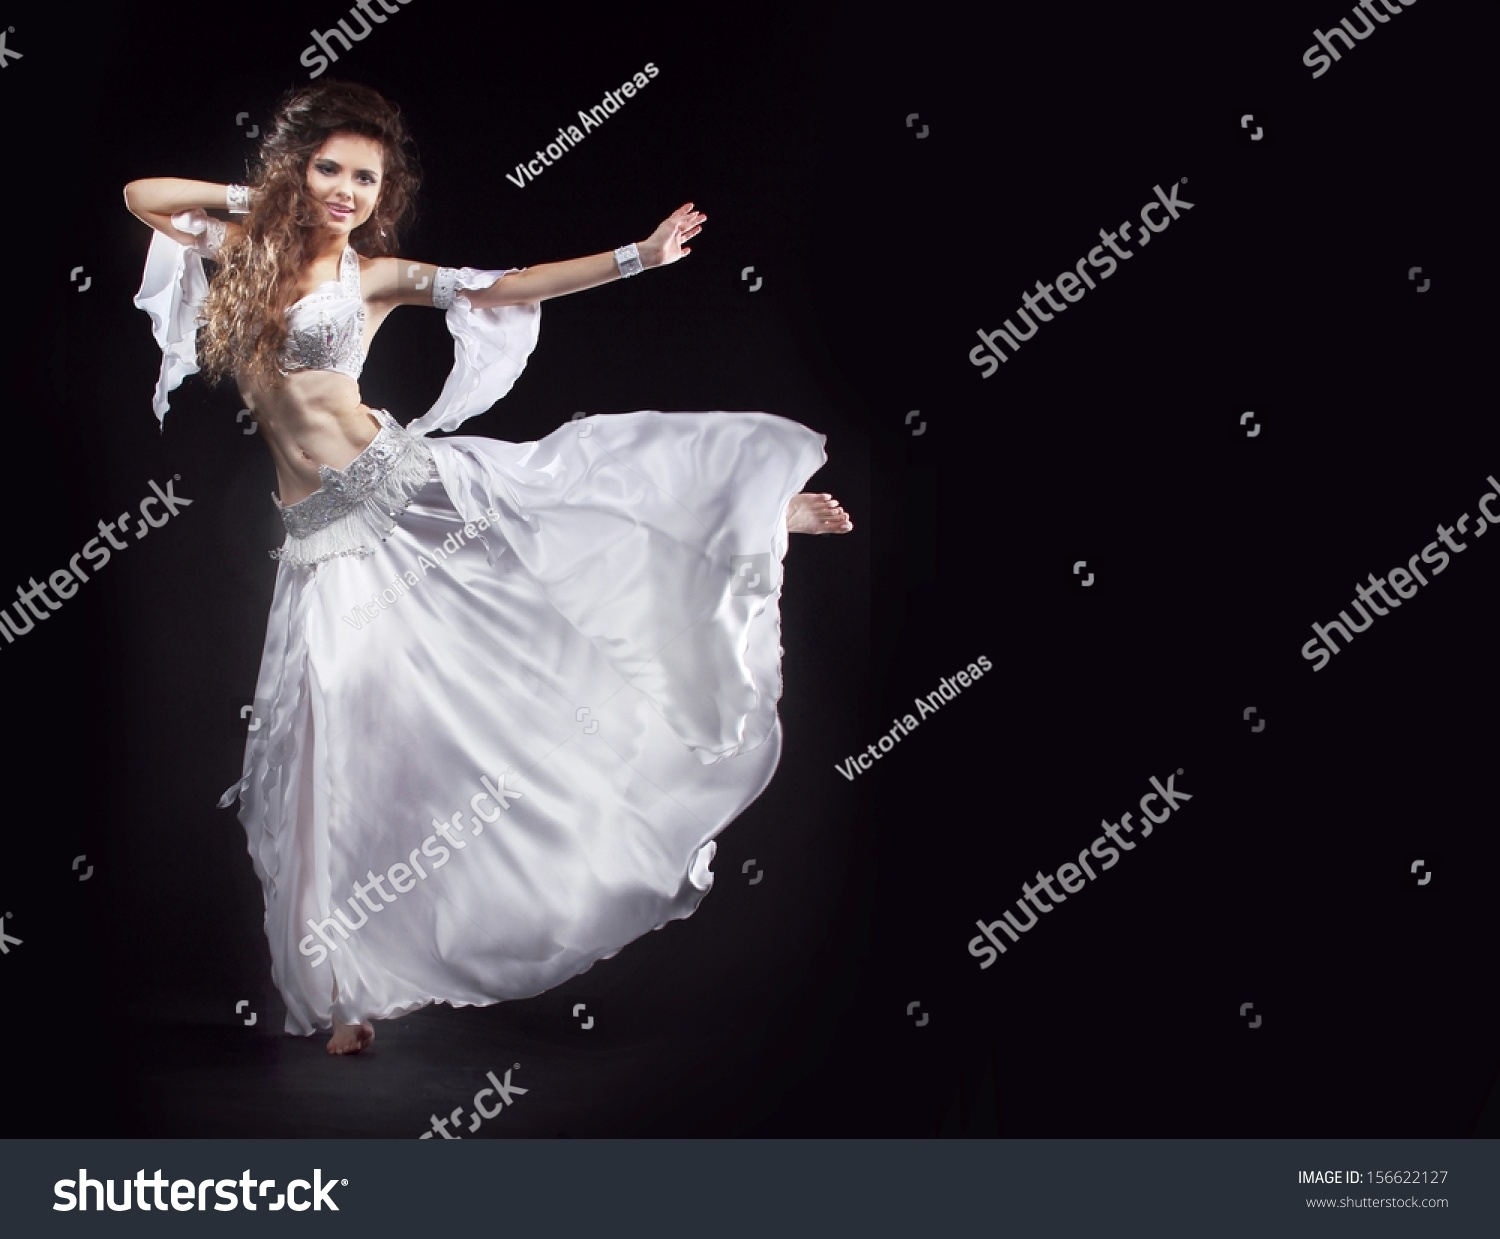 295f0a89da0 Beauty Girl belly dancer in white suit oriental dance in motion isolated on  black background